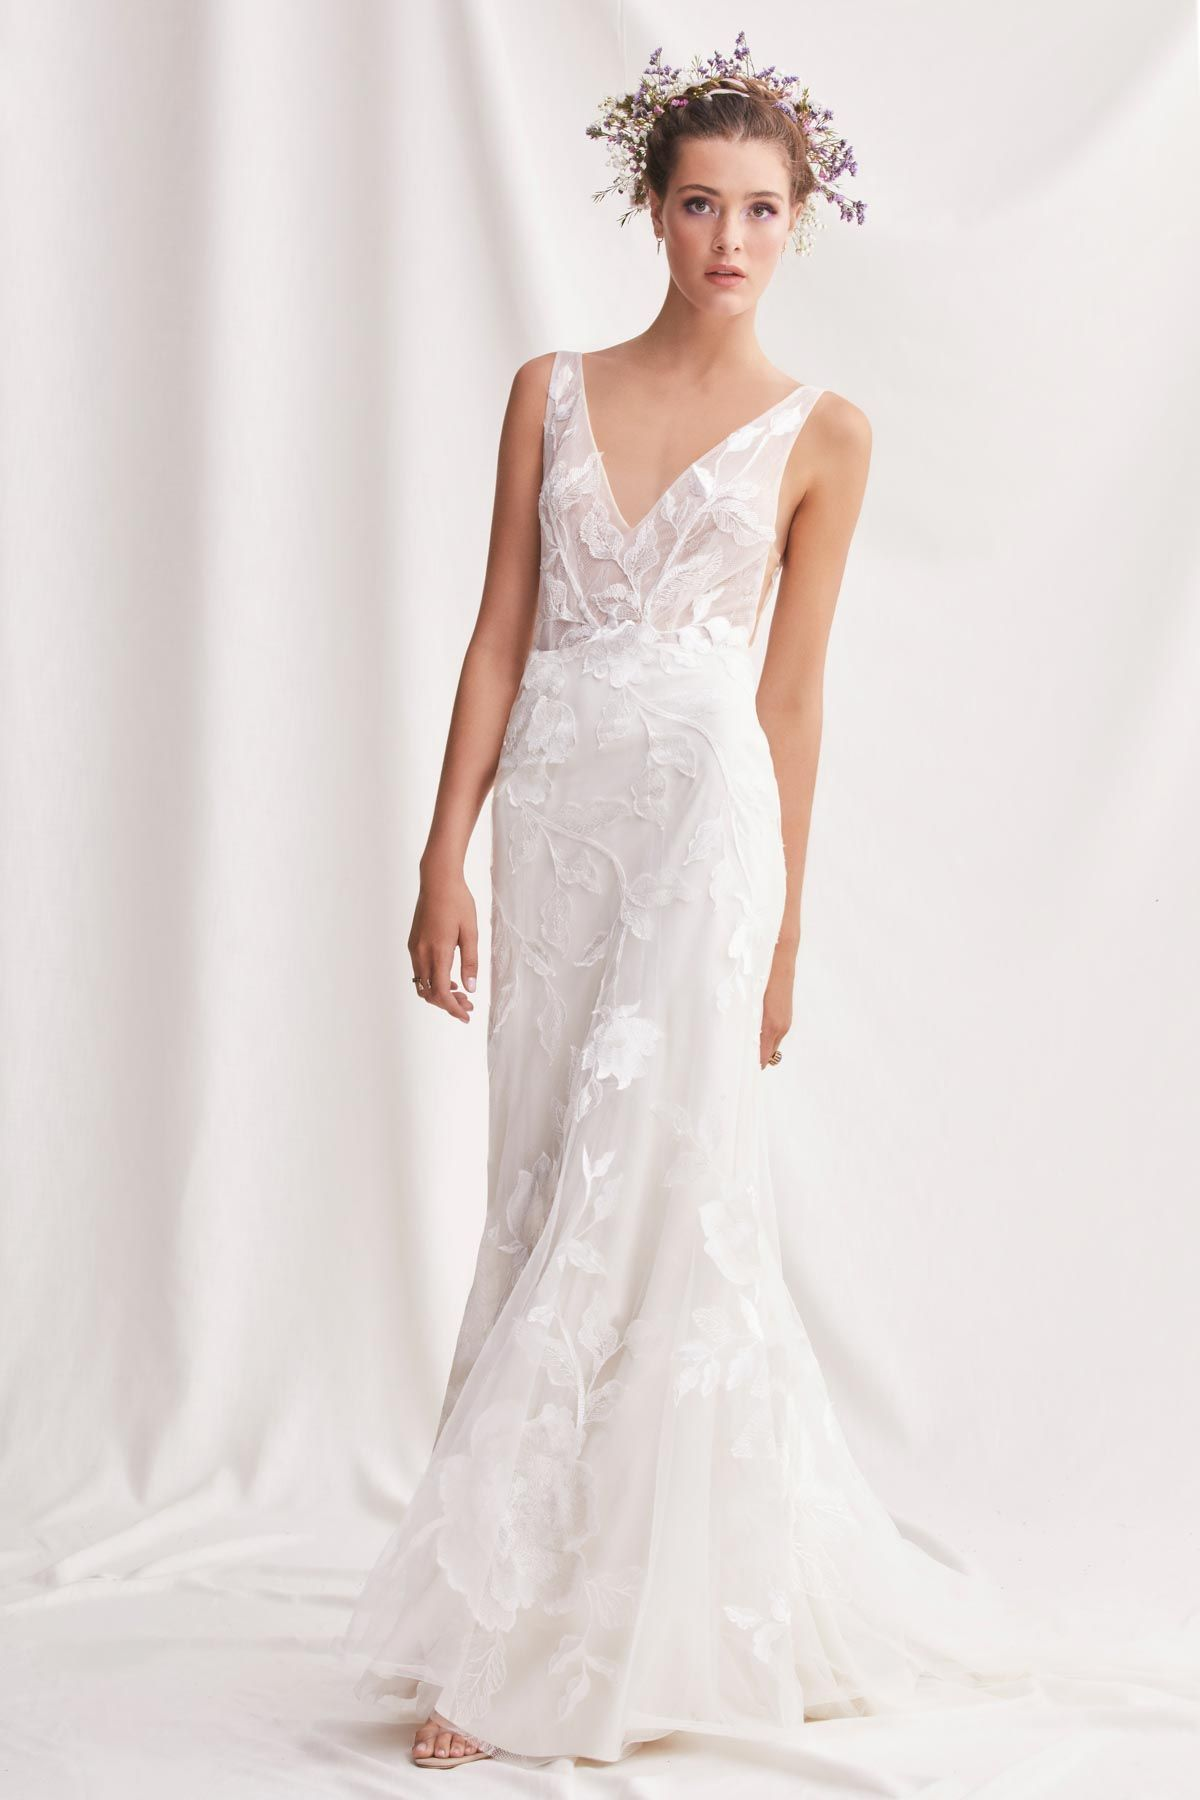 Honor By Willowby 2019 Willowby Collection Love Her Madly Collection When You Want An Ivory Bridal Gown V Neck Wedding Dress Fit And Flare Wedding Dress